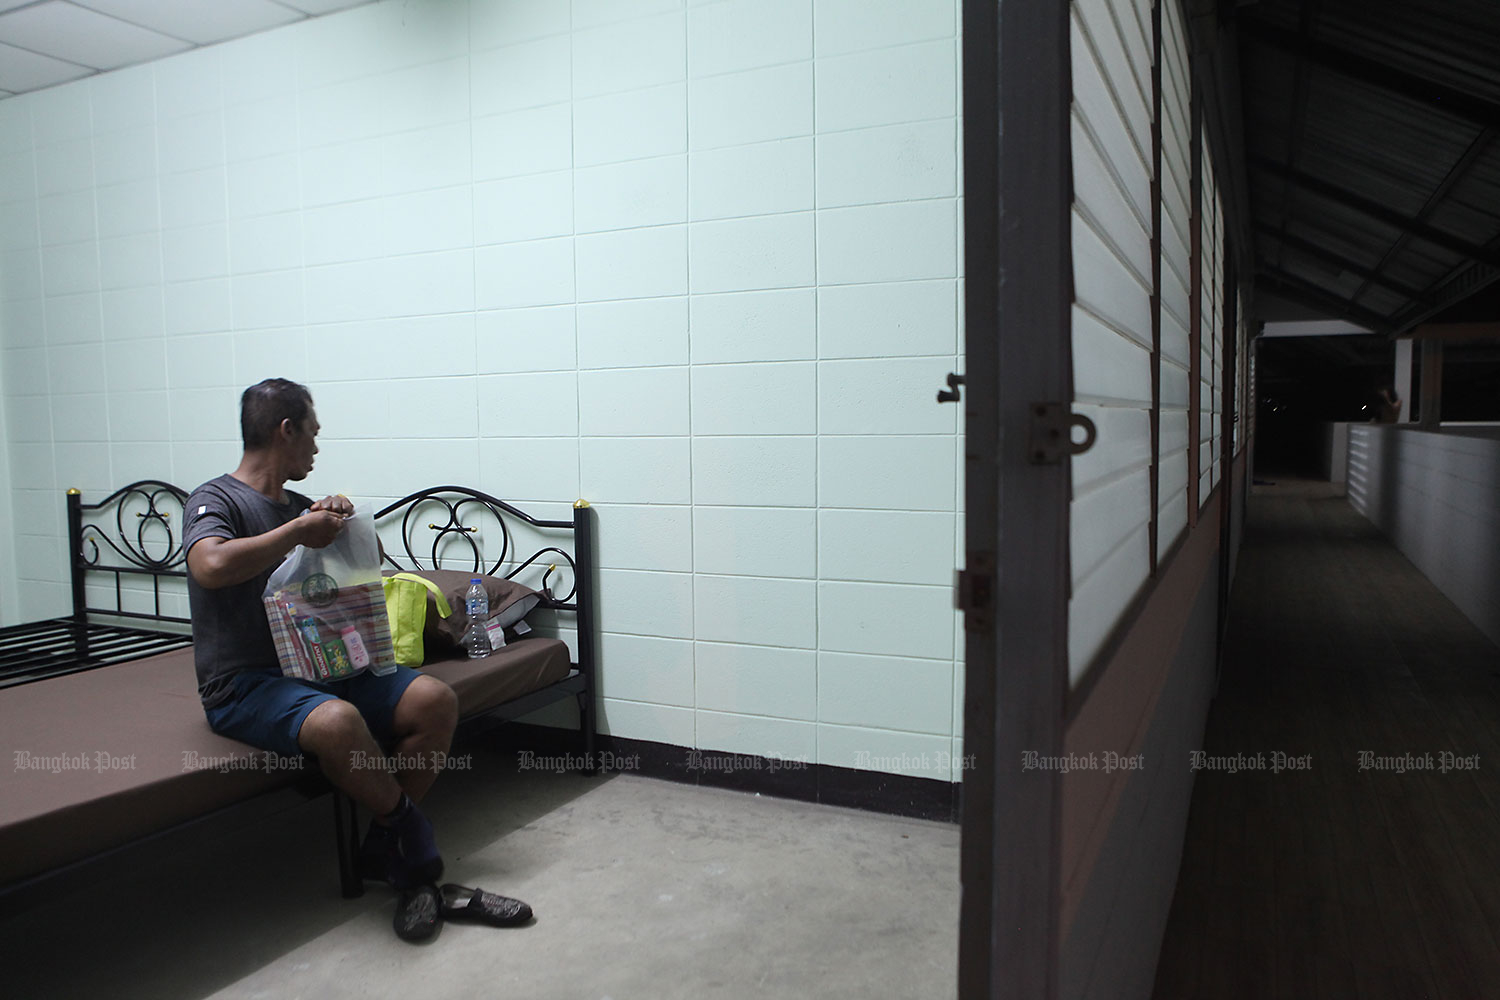 Safe, for now: A man settles in at a homeless shelter in On Nut Soi 40 in Bangkok's Prawet district. A number of homeless people from the Hua Lamphong and Lumpini areas are being temporarily housed at the shelter to reduce their risk of contracting Covid-19. (Photo by Arnun Chonmahatrakool)